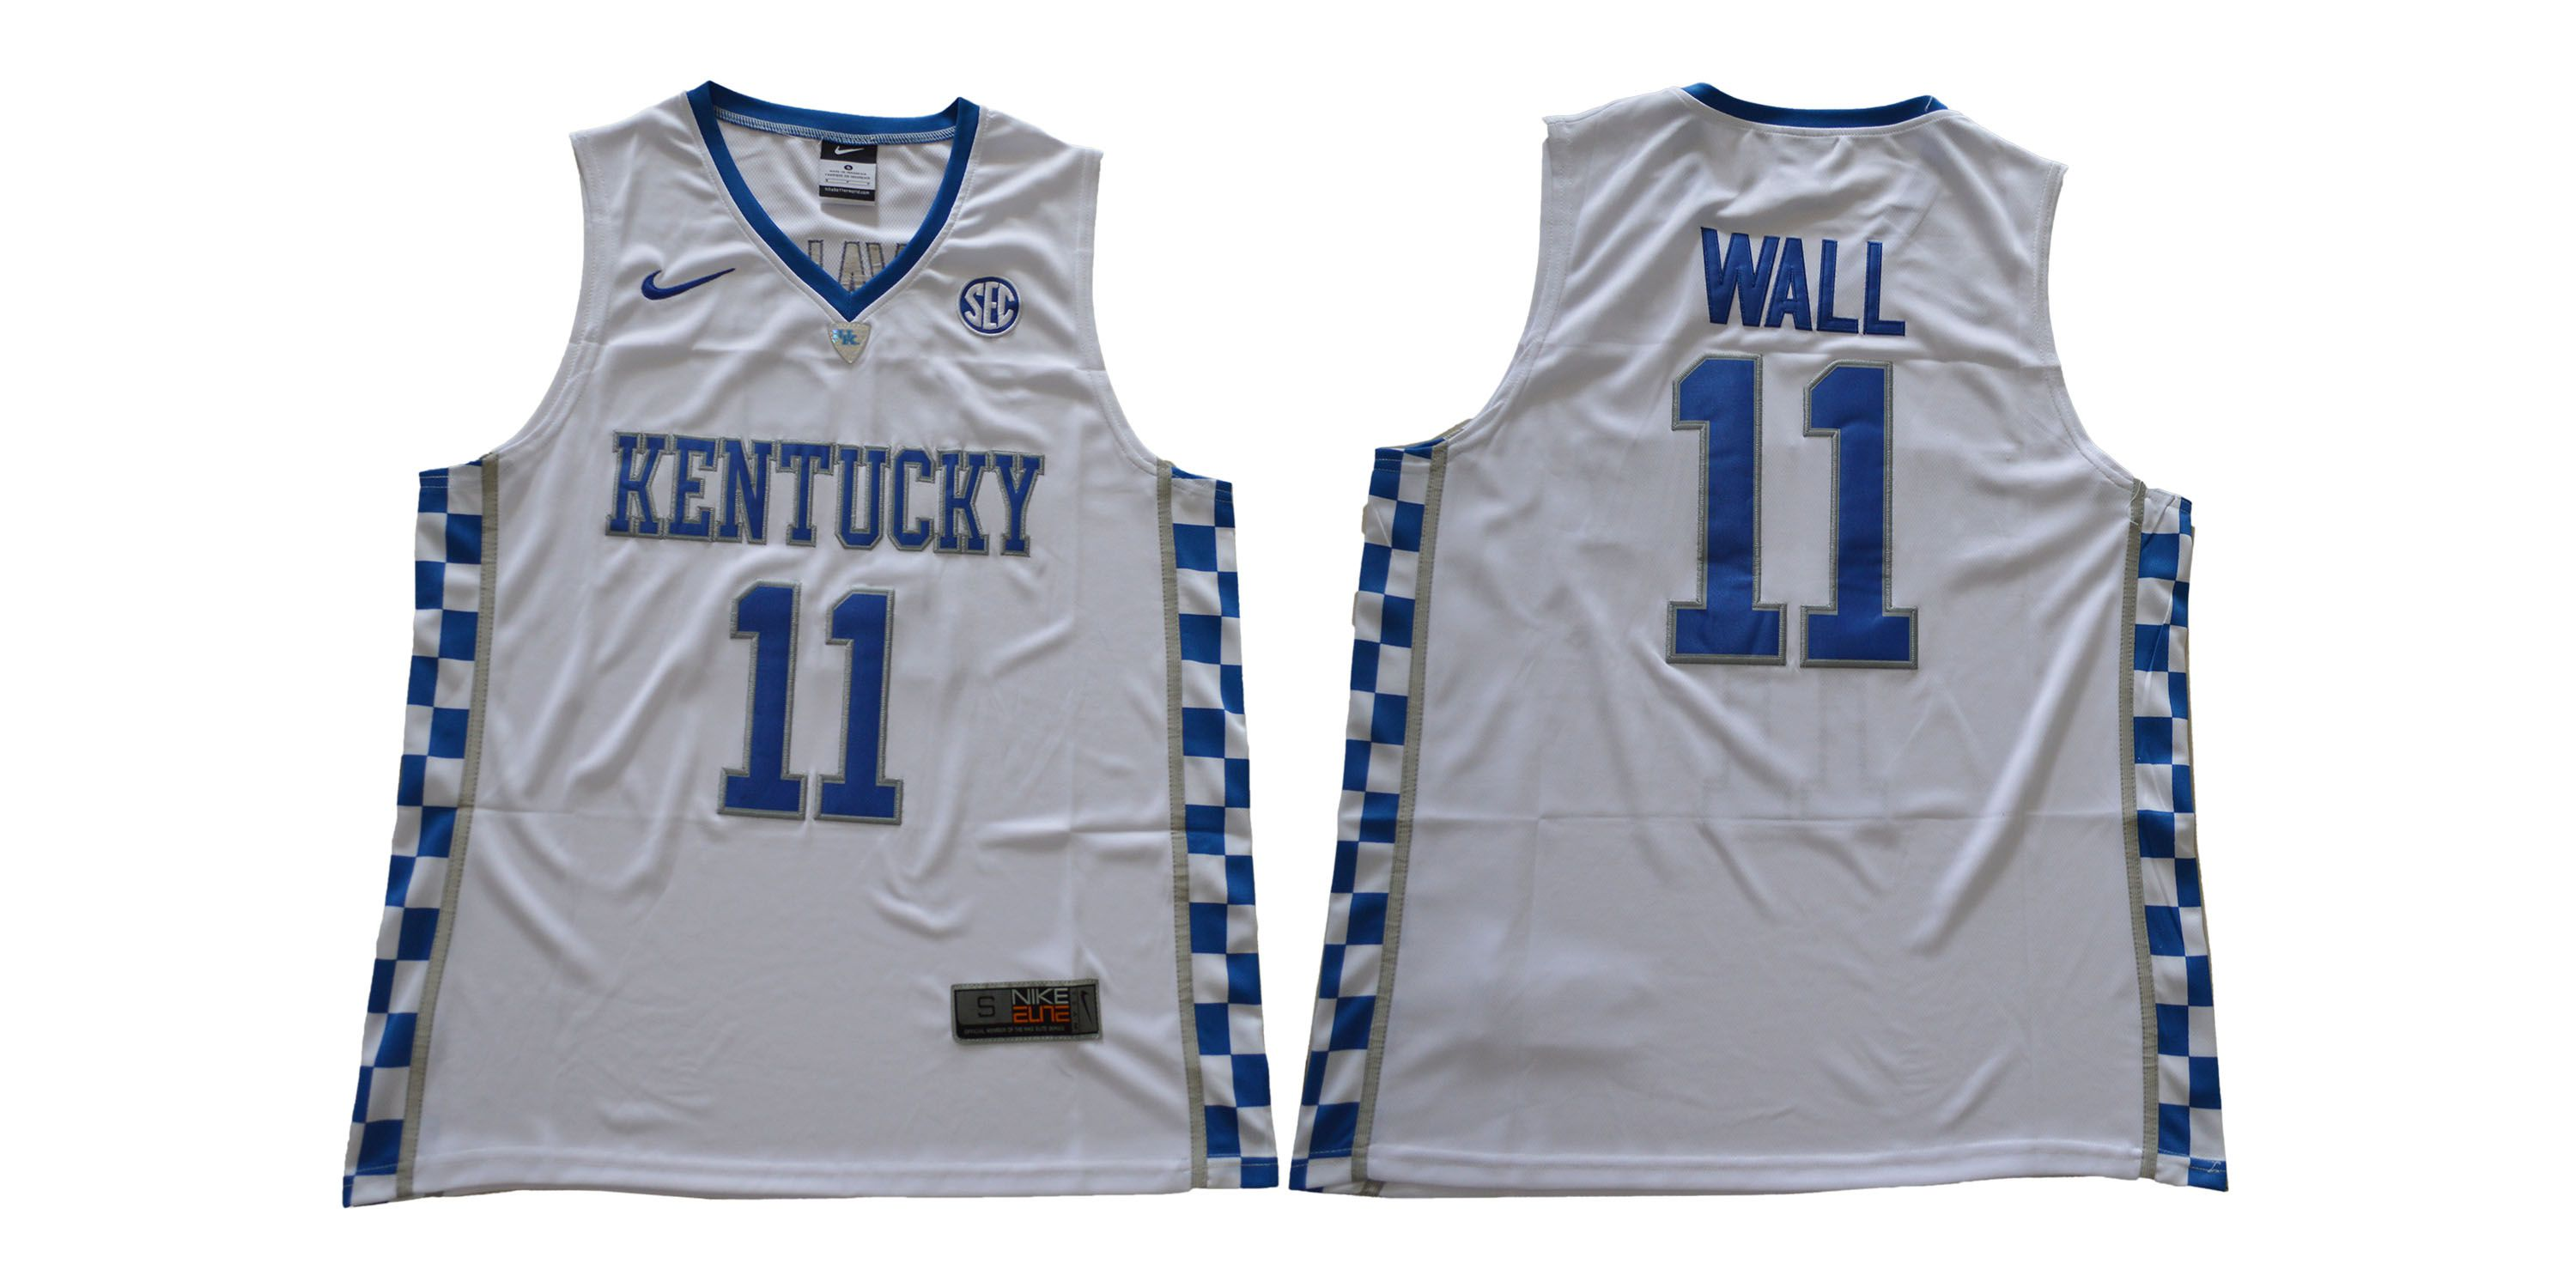 Men Kentucky Wildcats 11 Wall White NCAA Jerseys